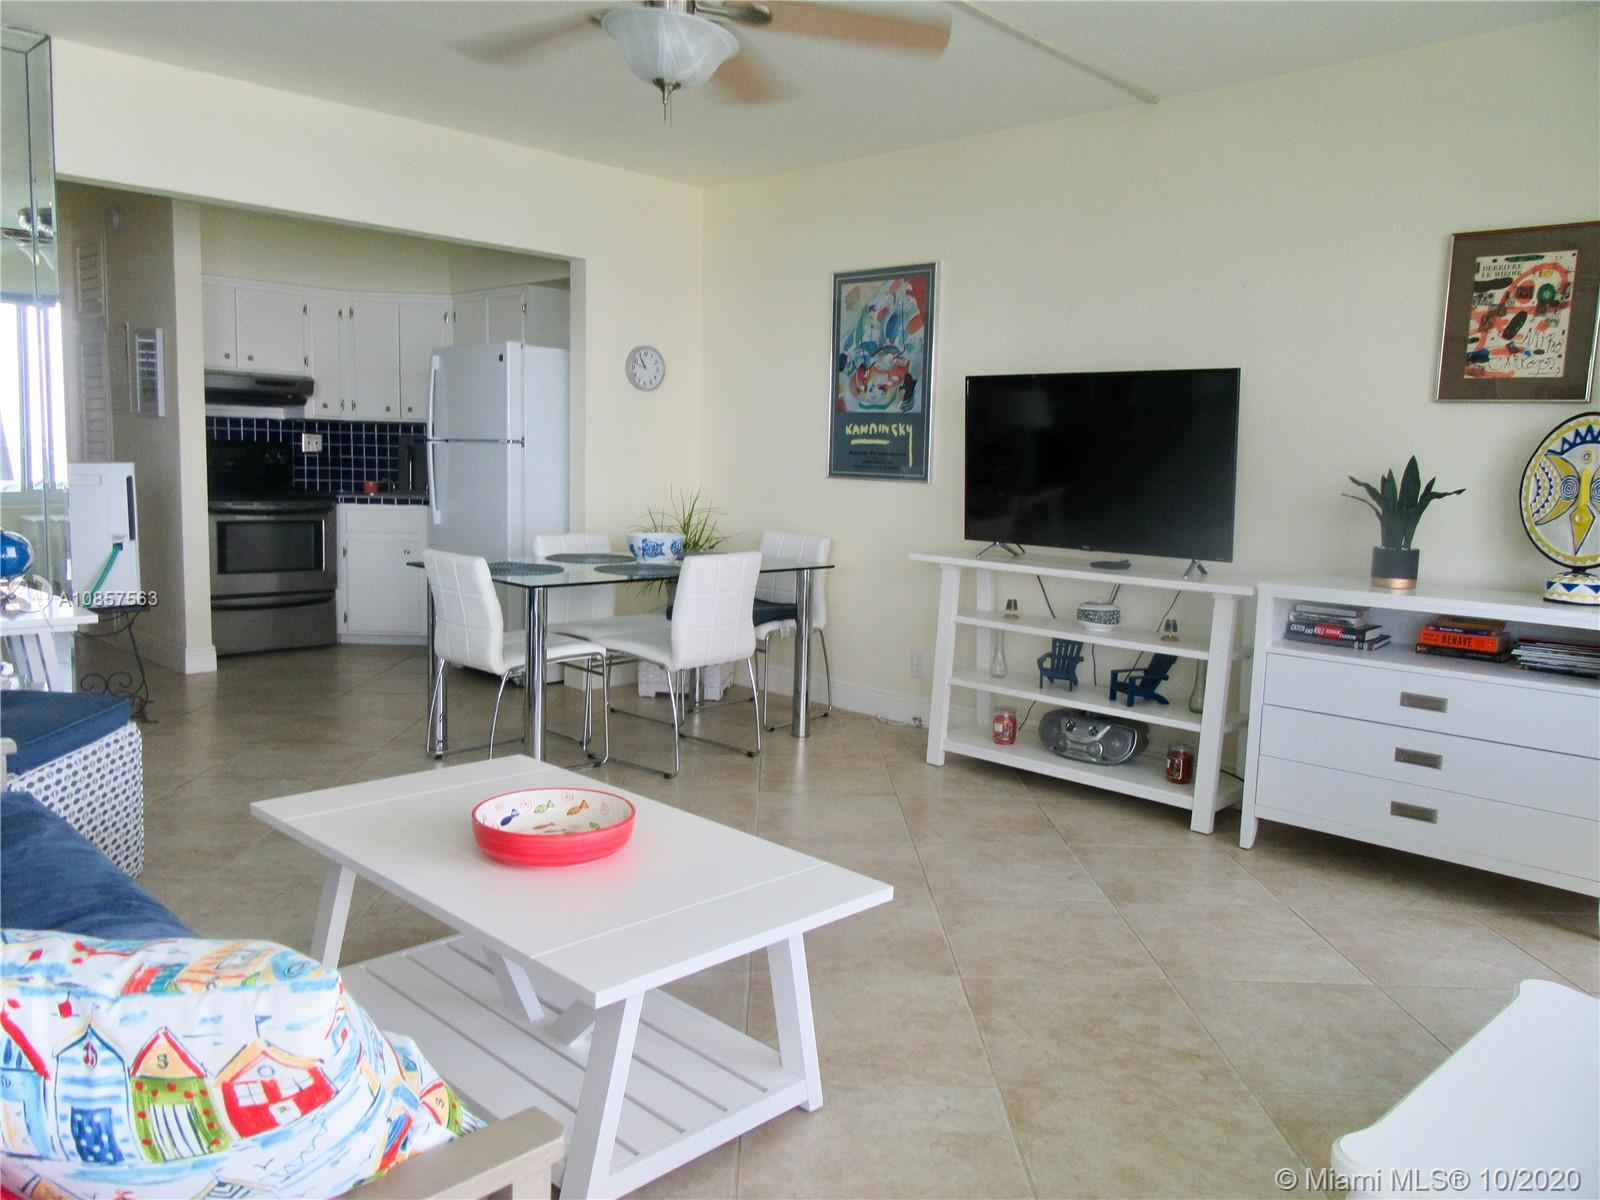 Direct ocean views from your window and balcony, building sits on the sand. High impact glass, new A/C units, new water heater, tile floors, well maintained building. The location doesn't get any better: walk to restaurants, entertainment, shopping, and the pier of the quaint village of Lauderdale By The Sea! Enjoy your morning coffee from the oceanfront balcony and walk down to the oceanfront, heated pool and BBQ. Low maintenance fees.